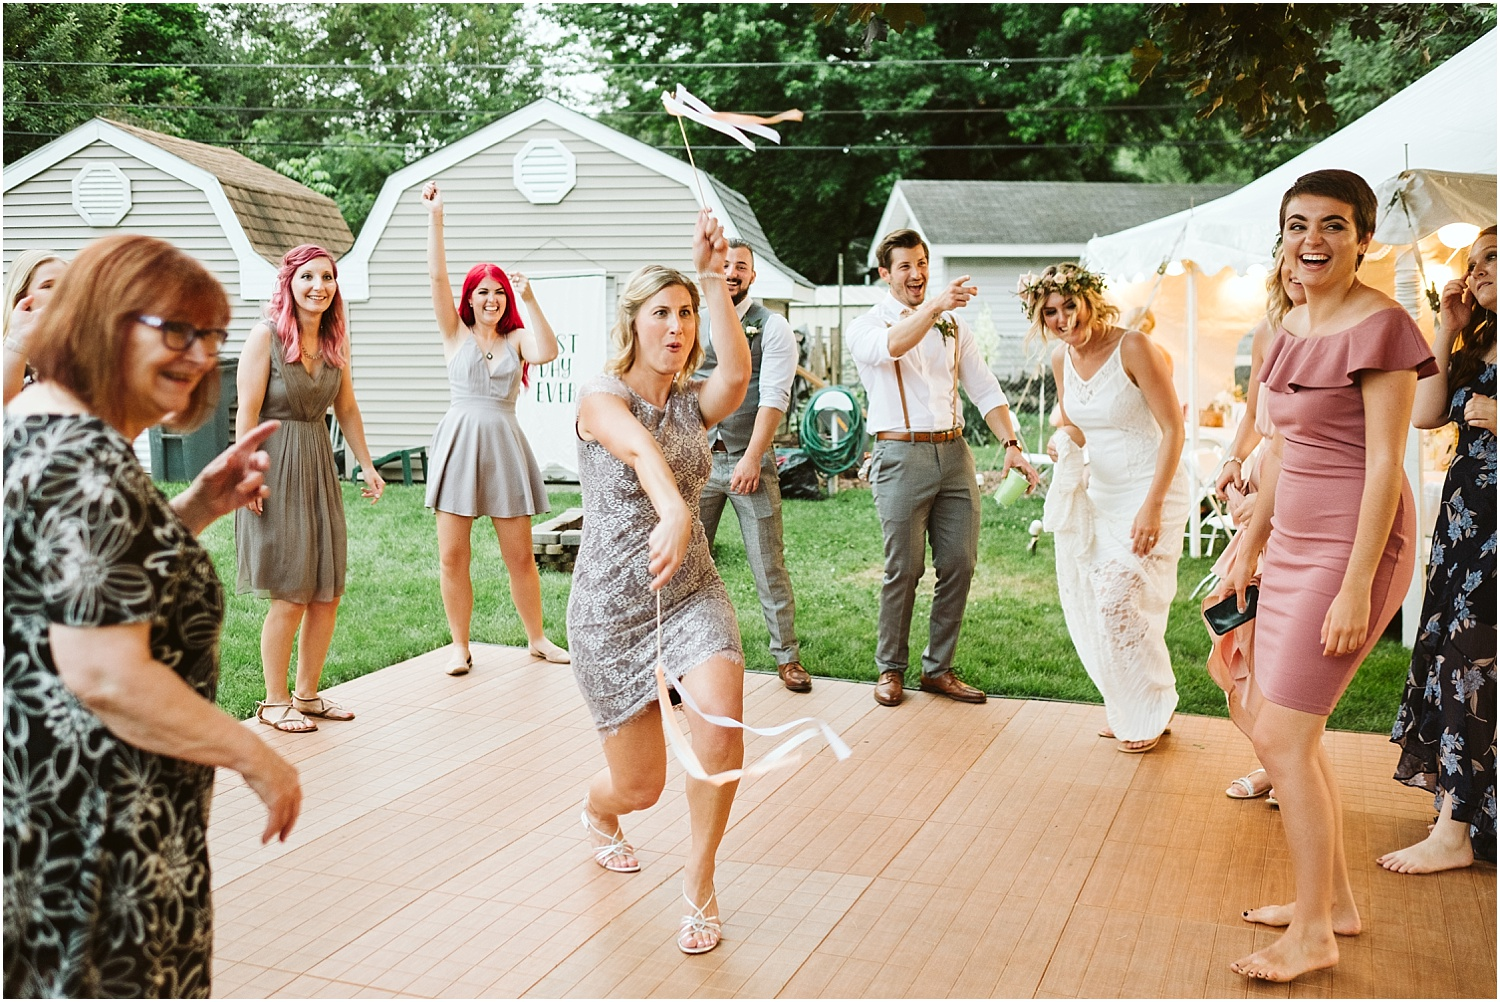 j-b-joyful-happy-smile-dancing-backyard-diy-boho-chic-wedding_0068.jpg